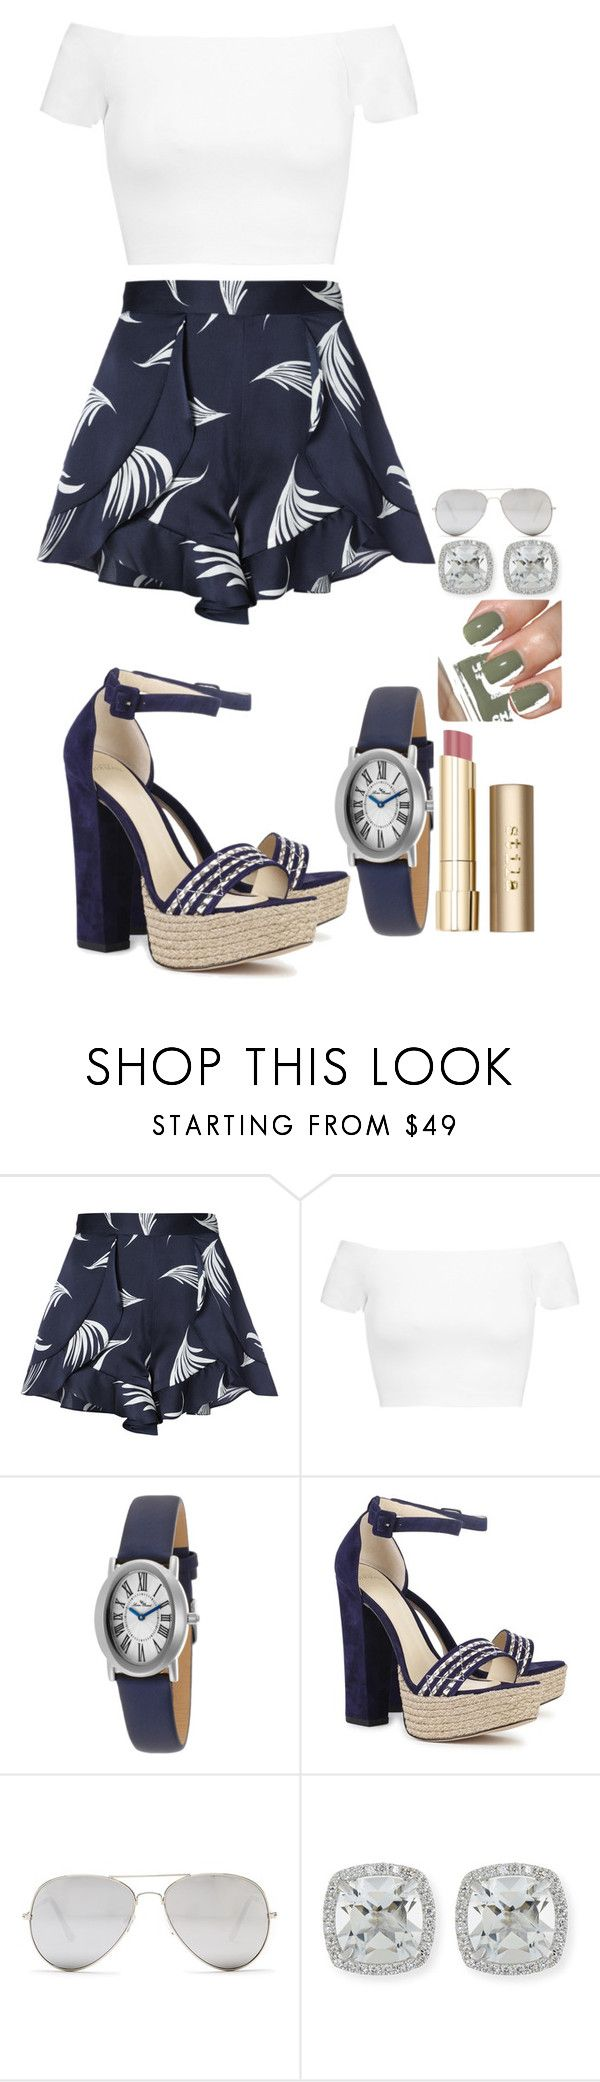 """Untitled #1703"" by social-outcast-16 ❤ liked on Polyvore featuring C/MEO COLLECTIVE, Alice + Olivia, Lucien Piccard, Alexandre Birman, Sunny Rebel, Frederic Sage, Chanel and Stila"